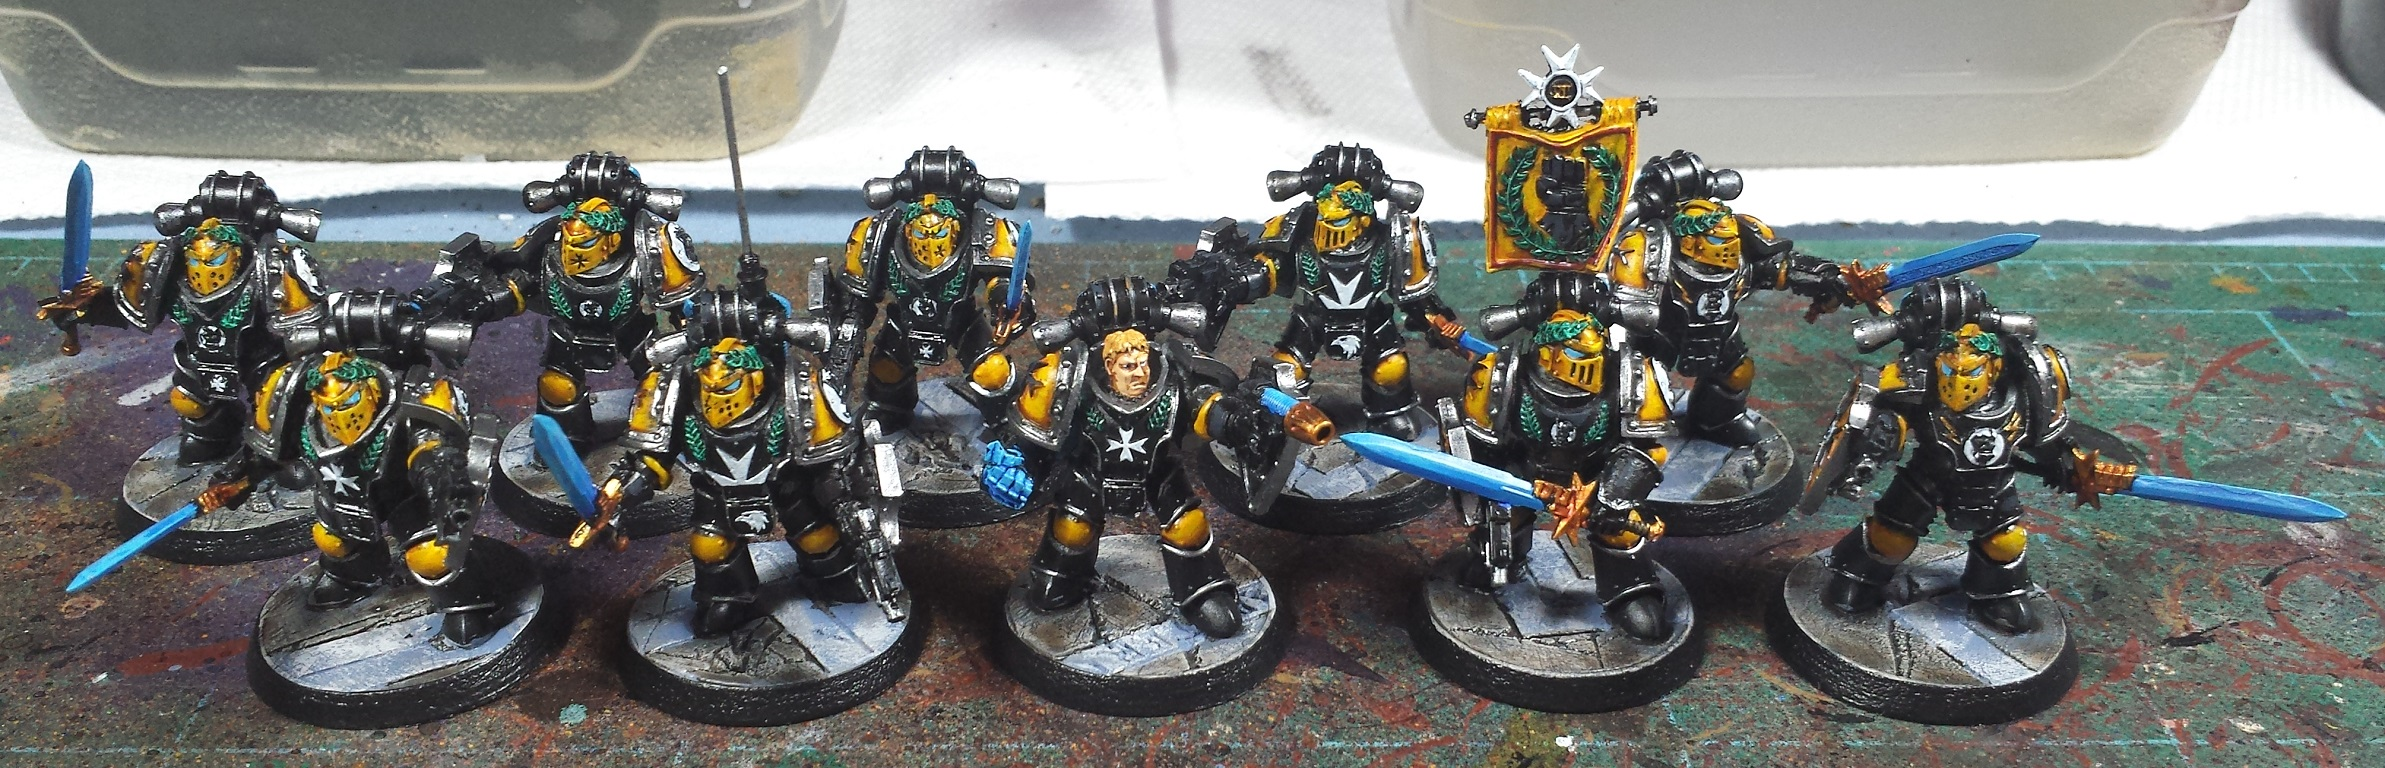 Cold Moon Images >> Heresy Era Imperial Fists